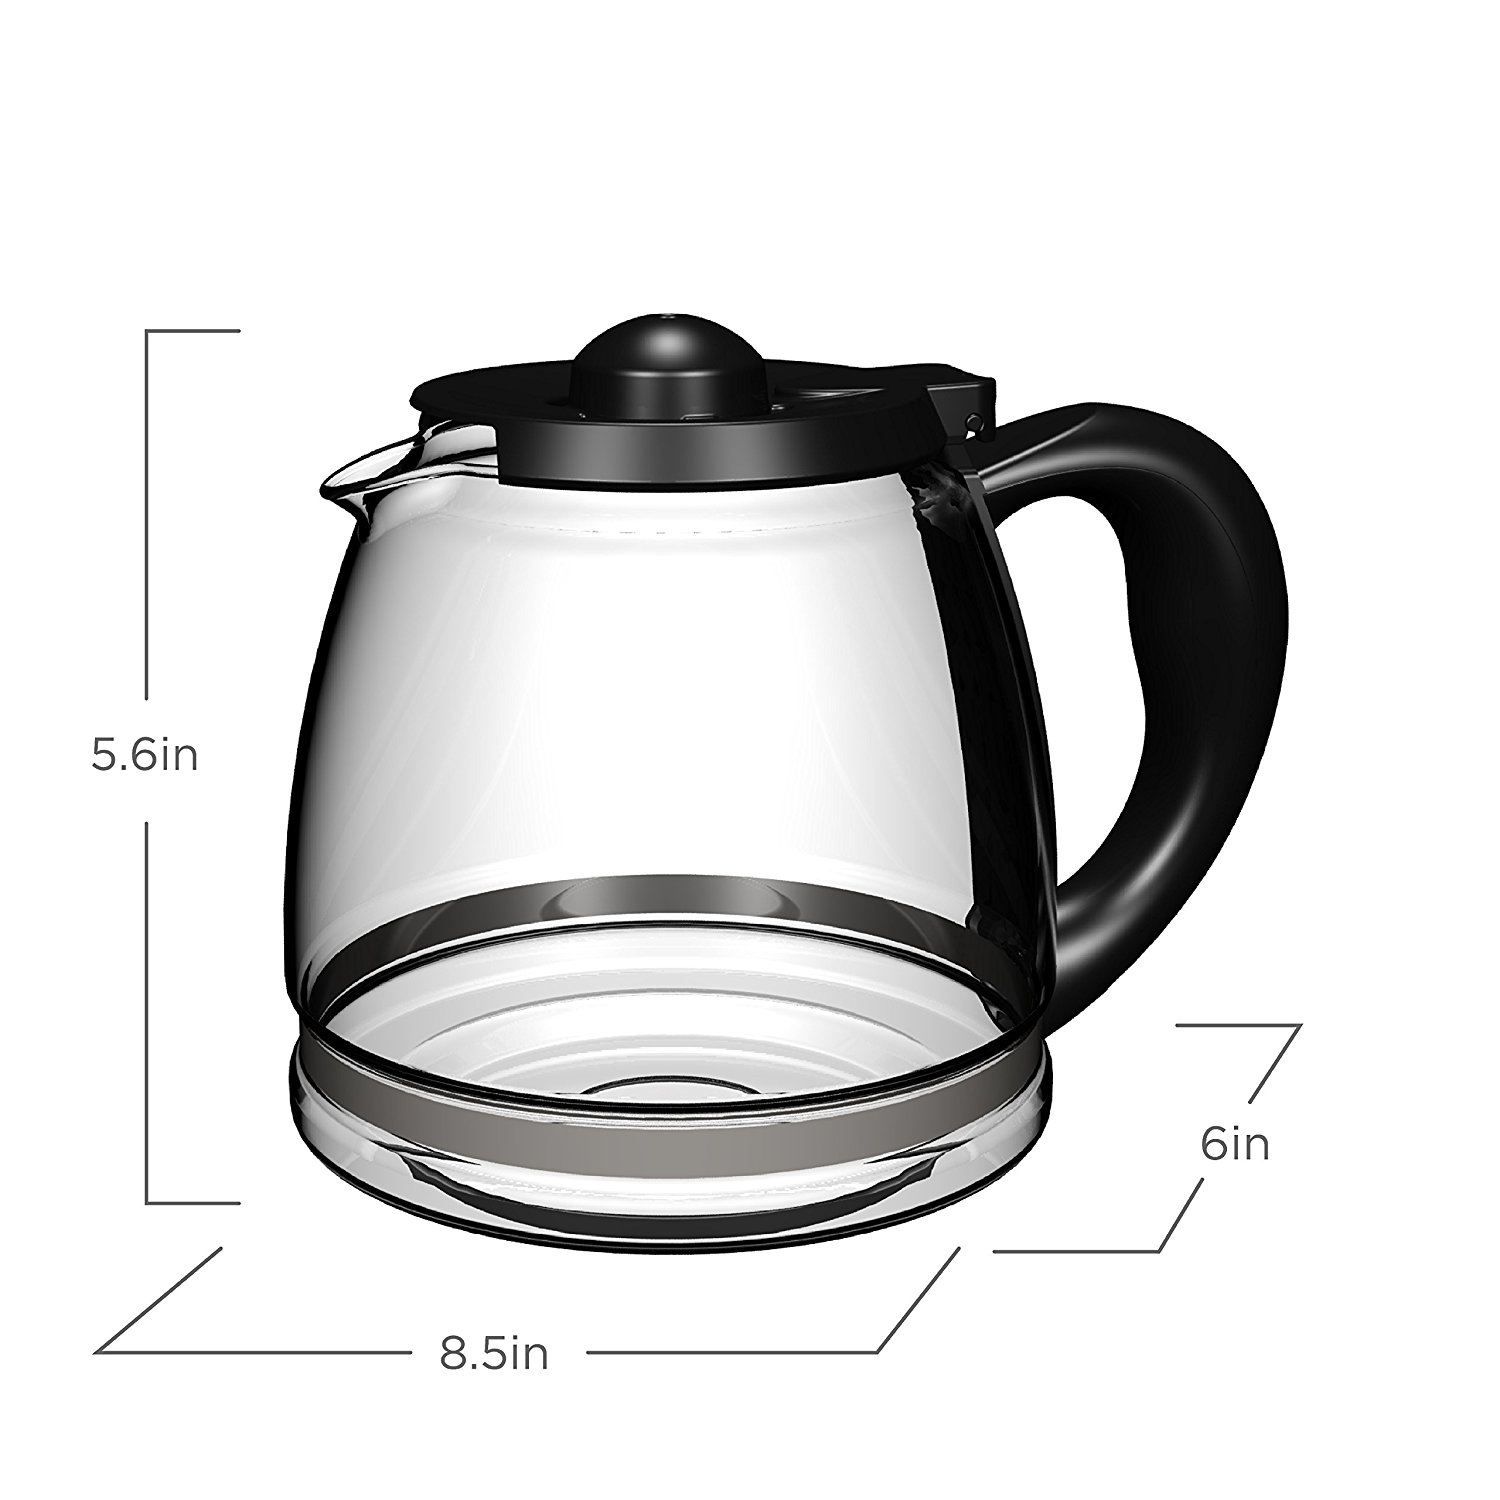 Black And Decker Coffee Maker Model Bcm1410b : BLACK+DECKER 12-Cup Replacement Carafe Best Price - BLACK+DECKER 12-Cup Replacement Carafe Review